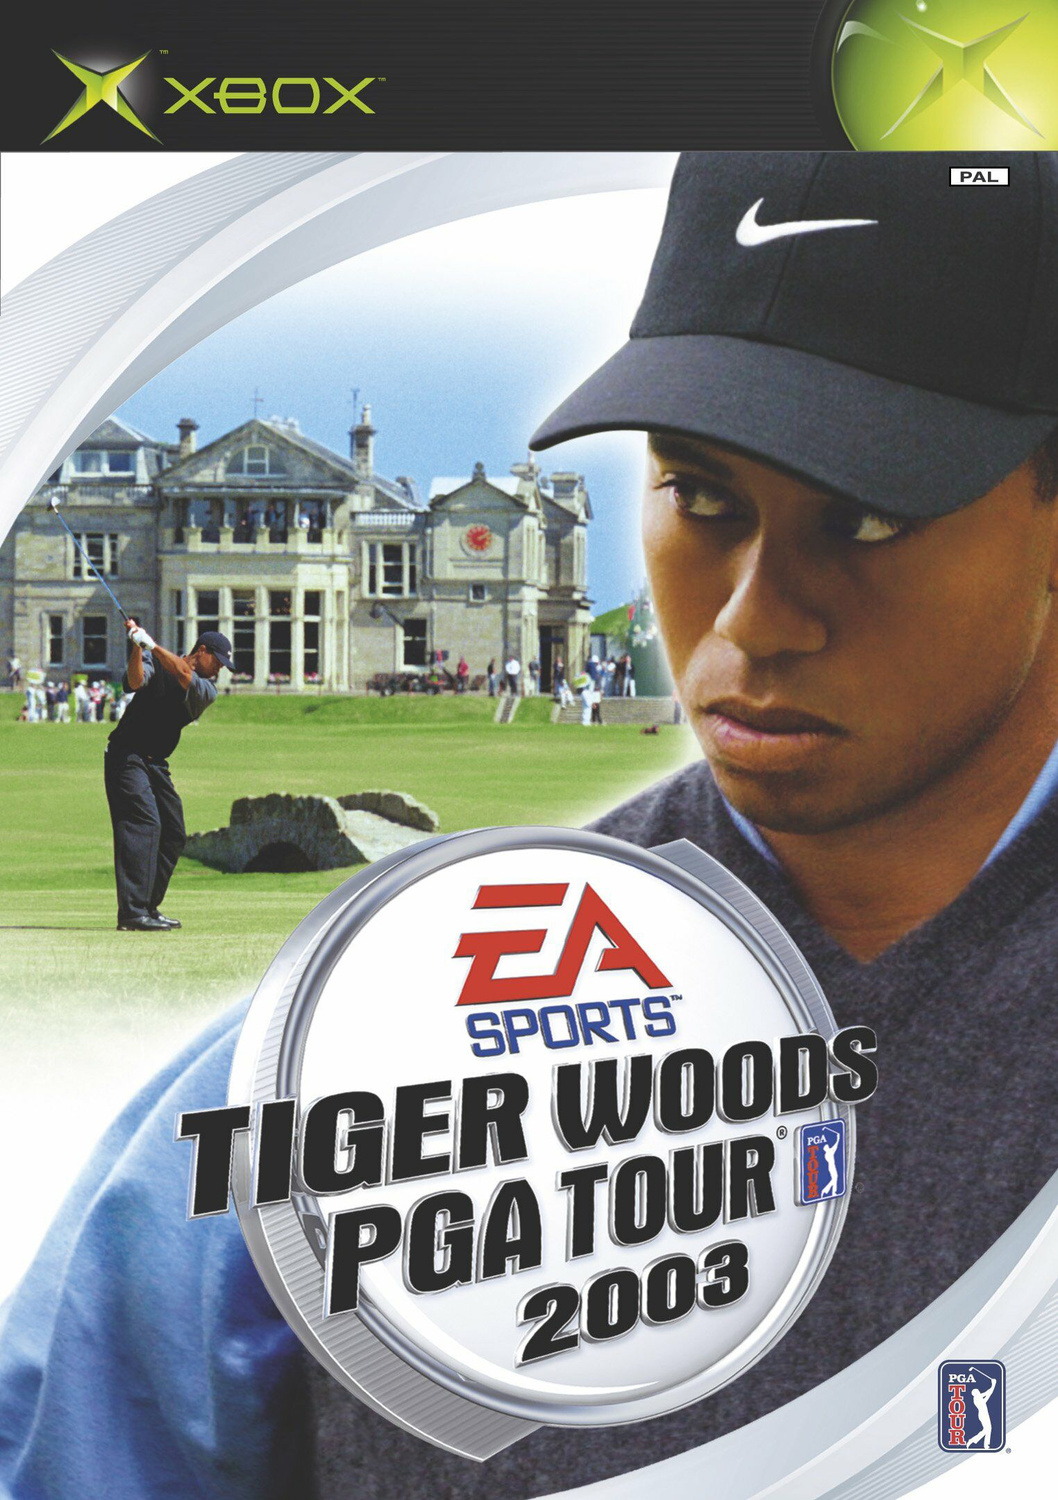 Tiger Woods PGA Tour 2003 - Tiger Woods PGA Tour 03